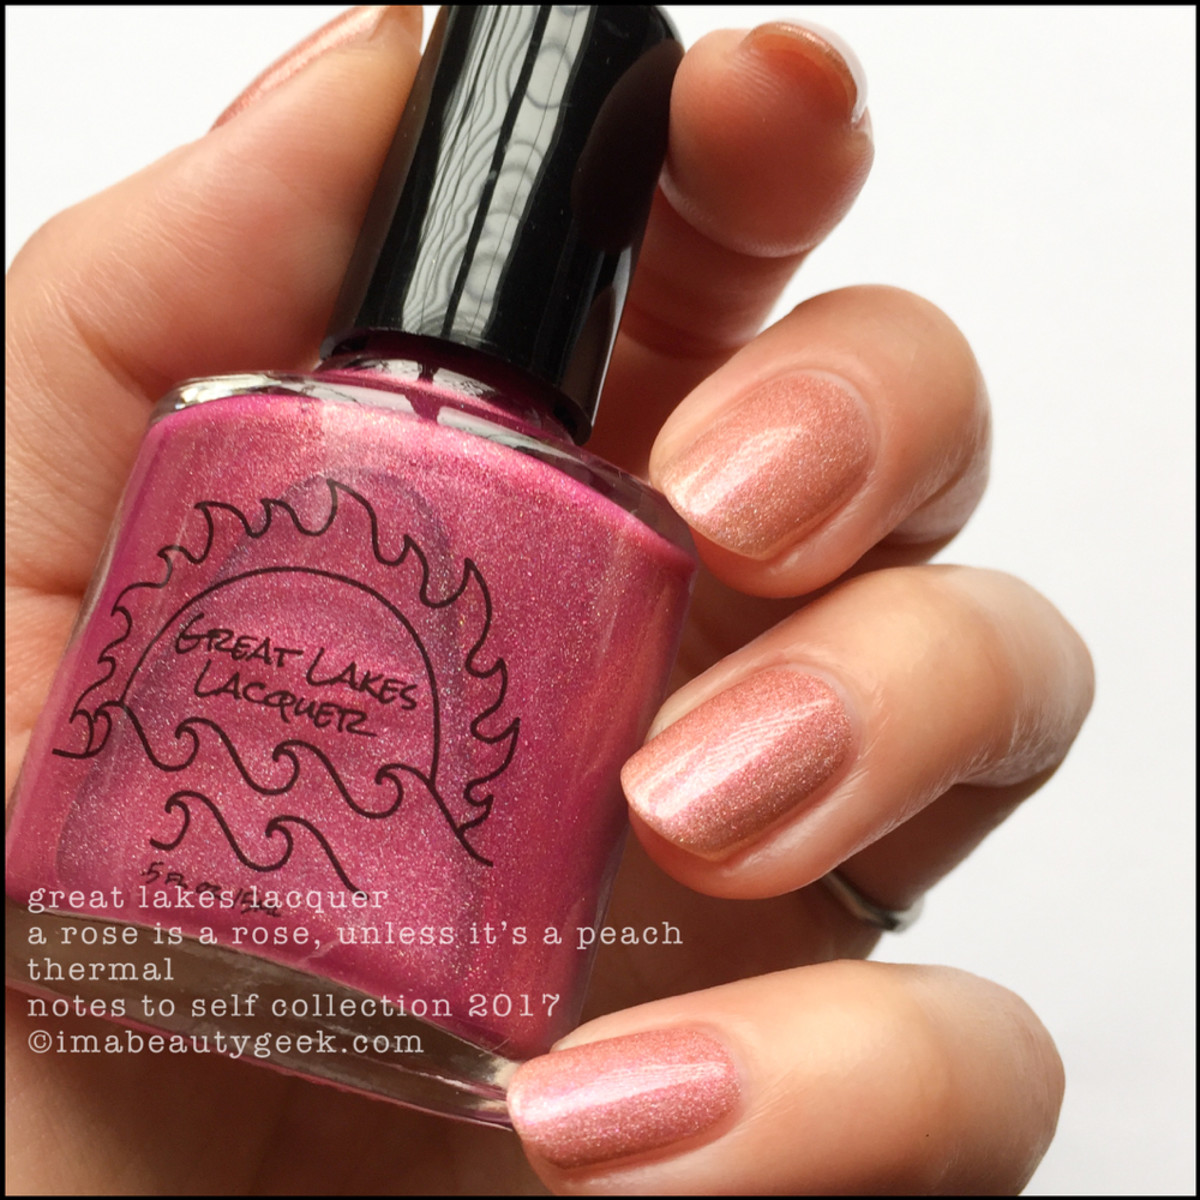 Great Lakes Lacquer A Rose is a Rose Unless It's a Peach 2 _ Great Lakes Lacquer Notes to Self Thermal Collection 2017